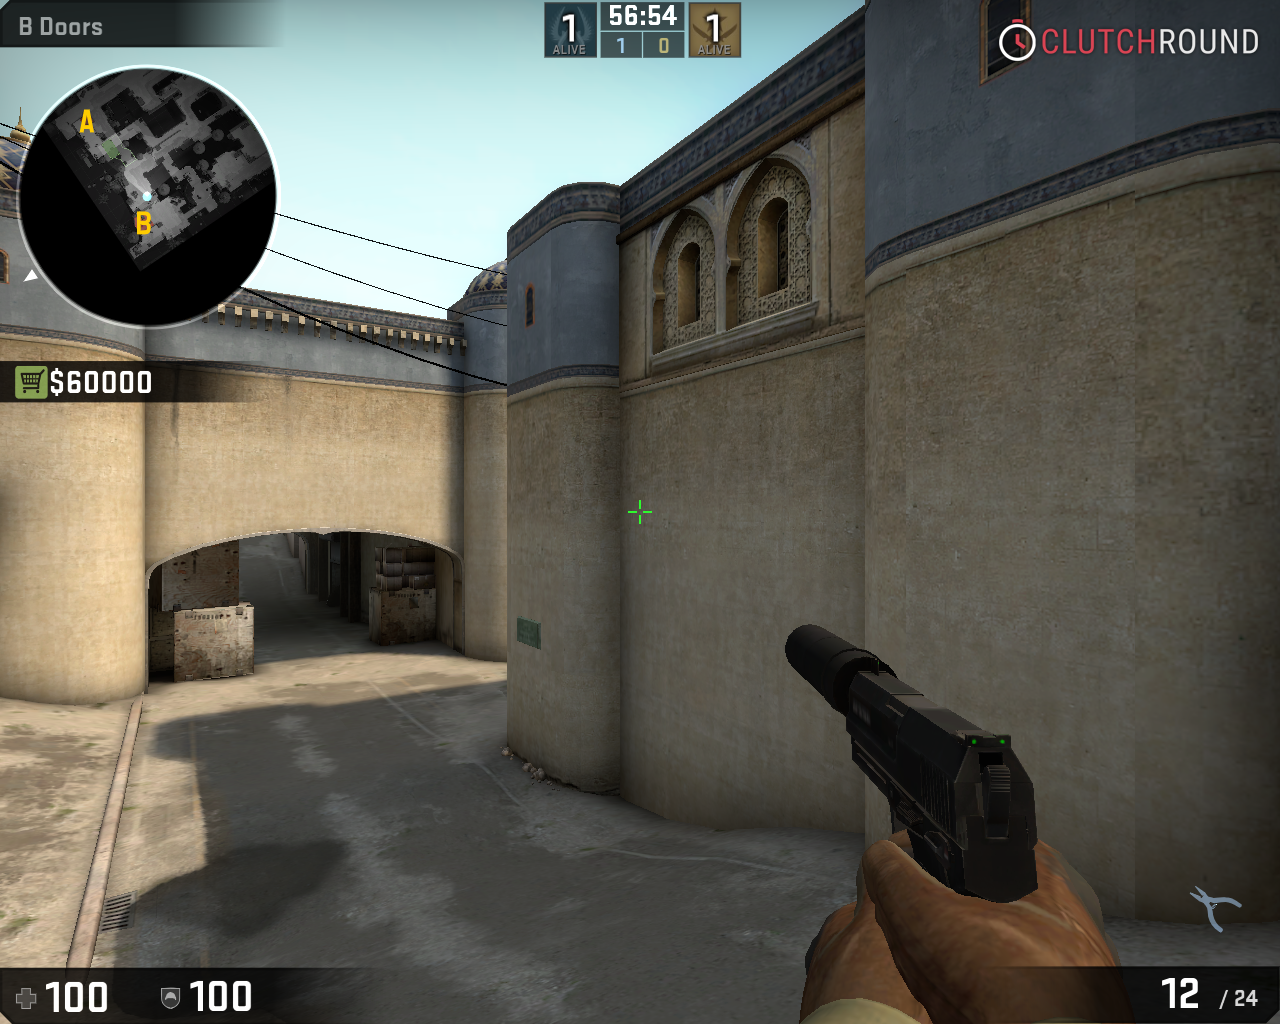 CS:GO - Video settings comparison and Tweaking Guide - clutchround com